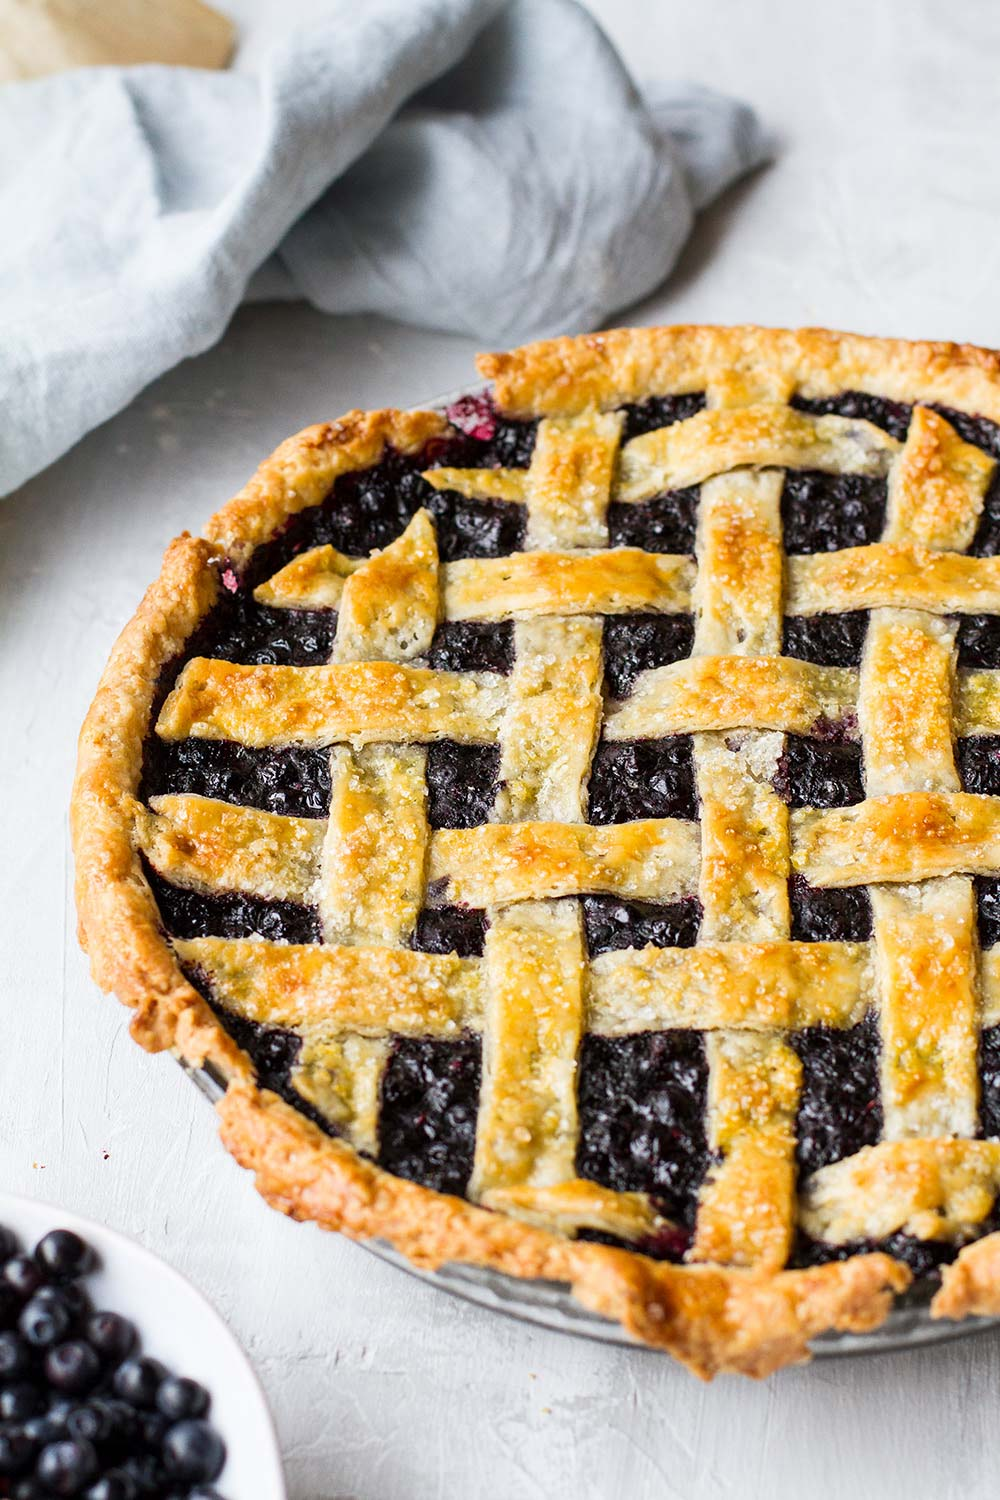 Baked blueberry pie with lattice top, not showing all of it.